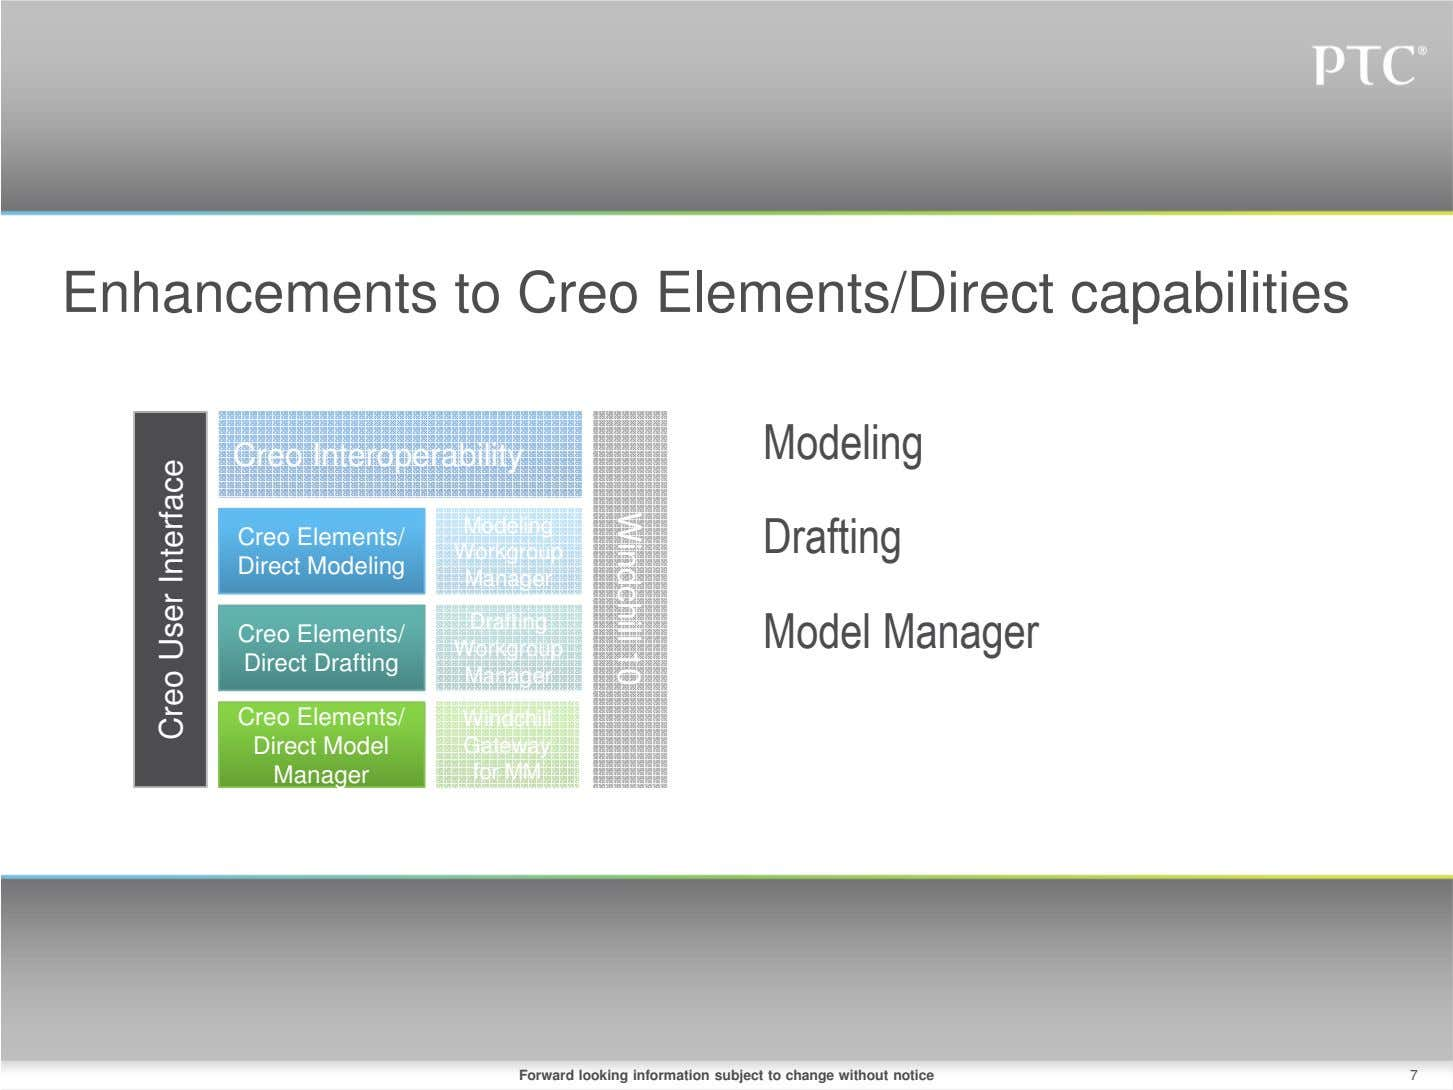 Enhancements to Creo Elements/Direct capabilities Windchill 10 Creo Interoperability Modeling Creo Elements/ Direct